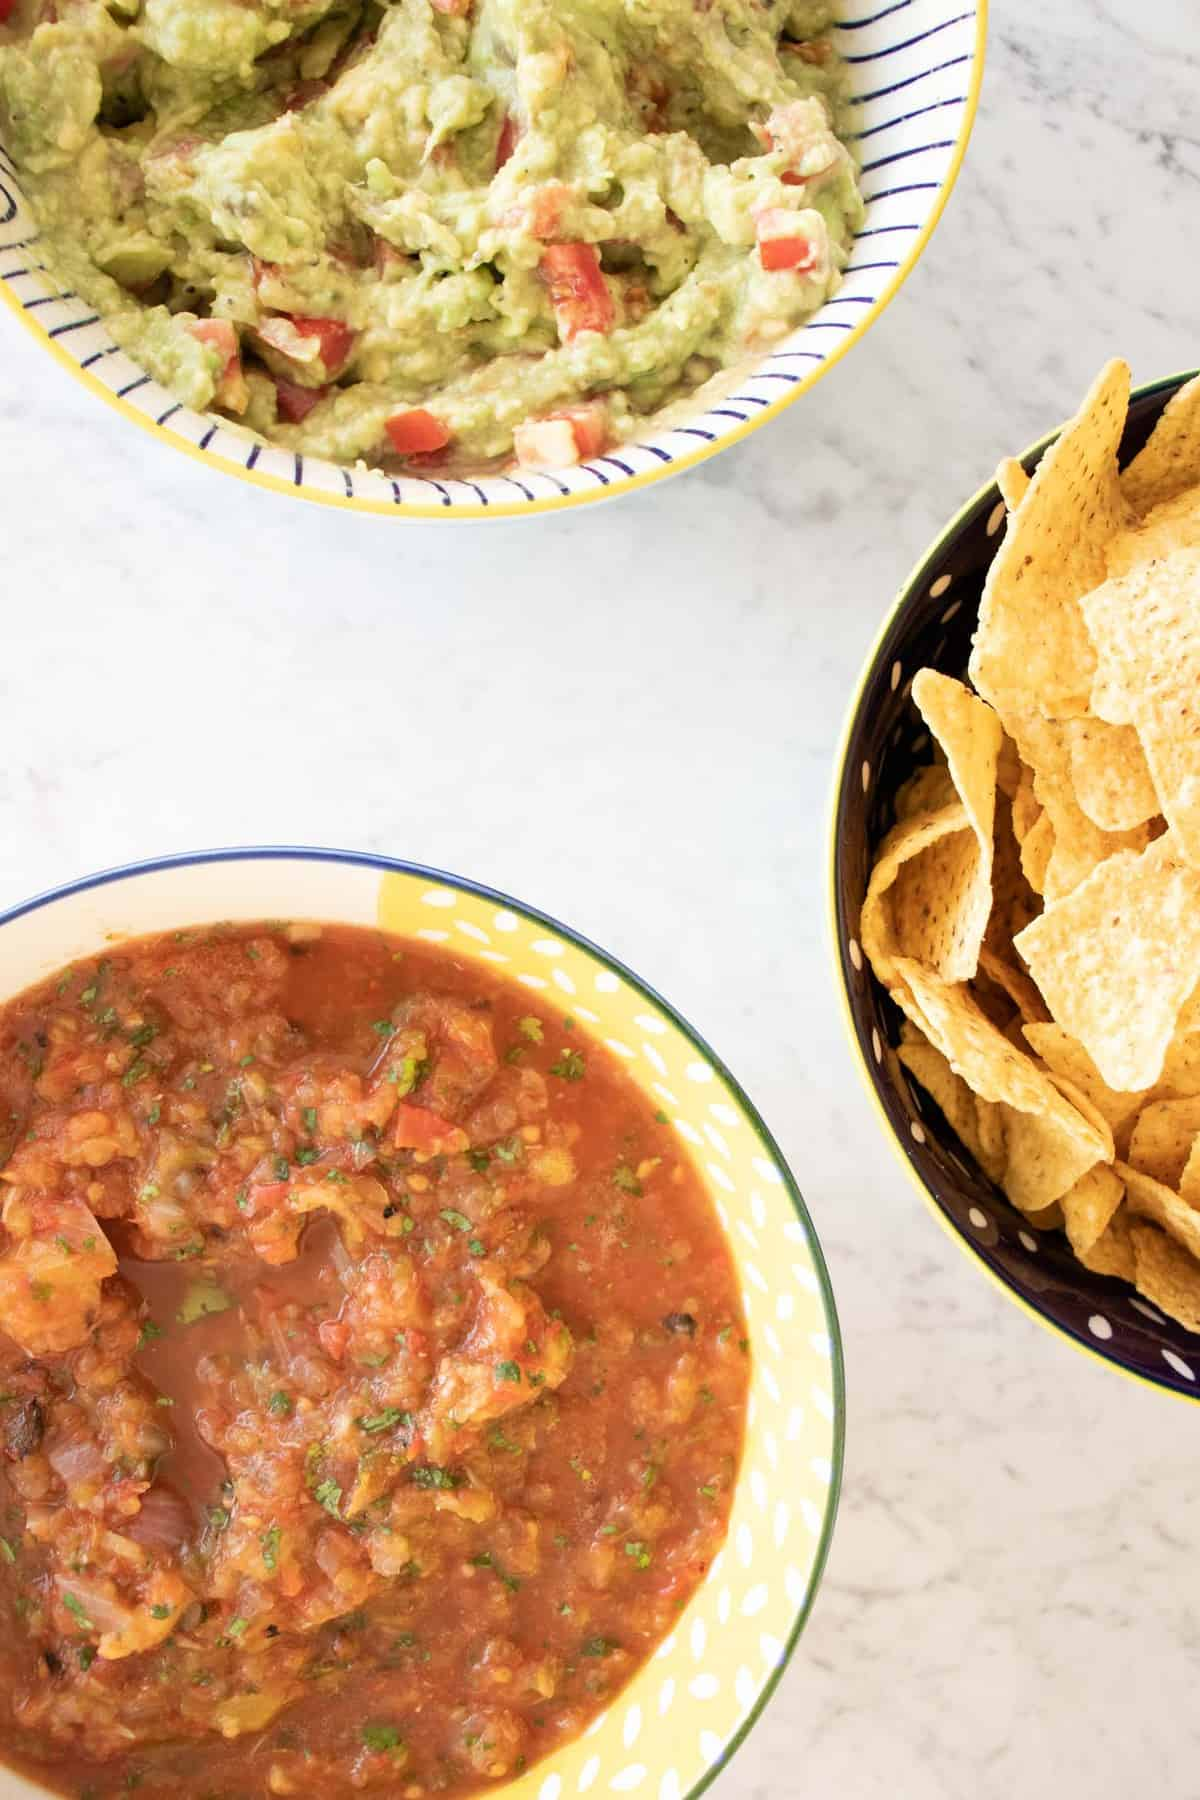 pineapple salsa with guacamole and chips